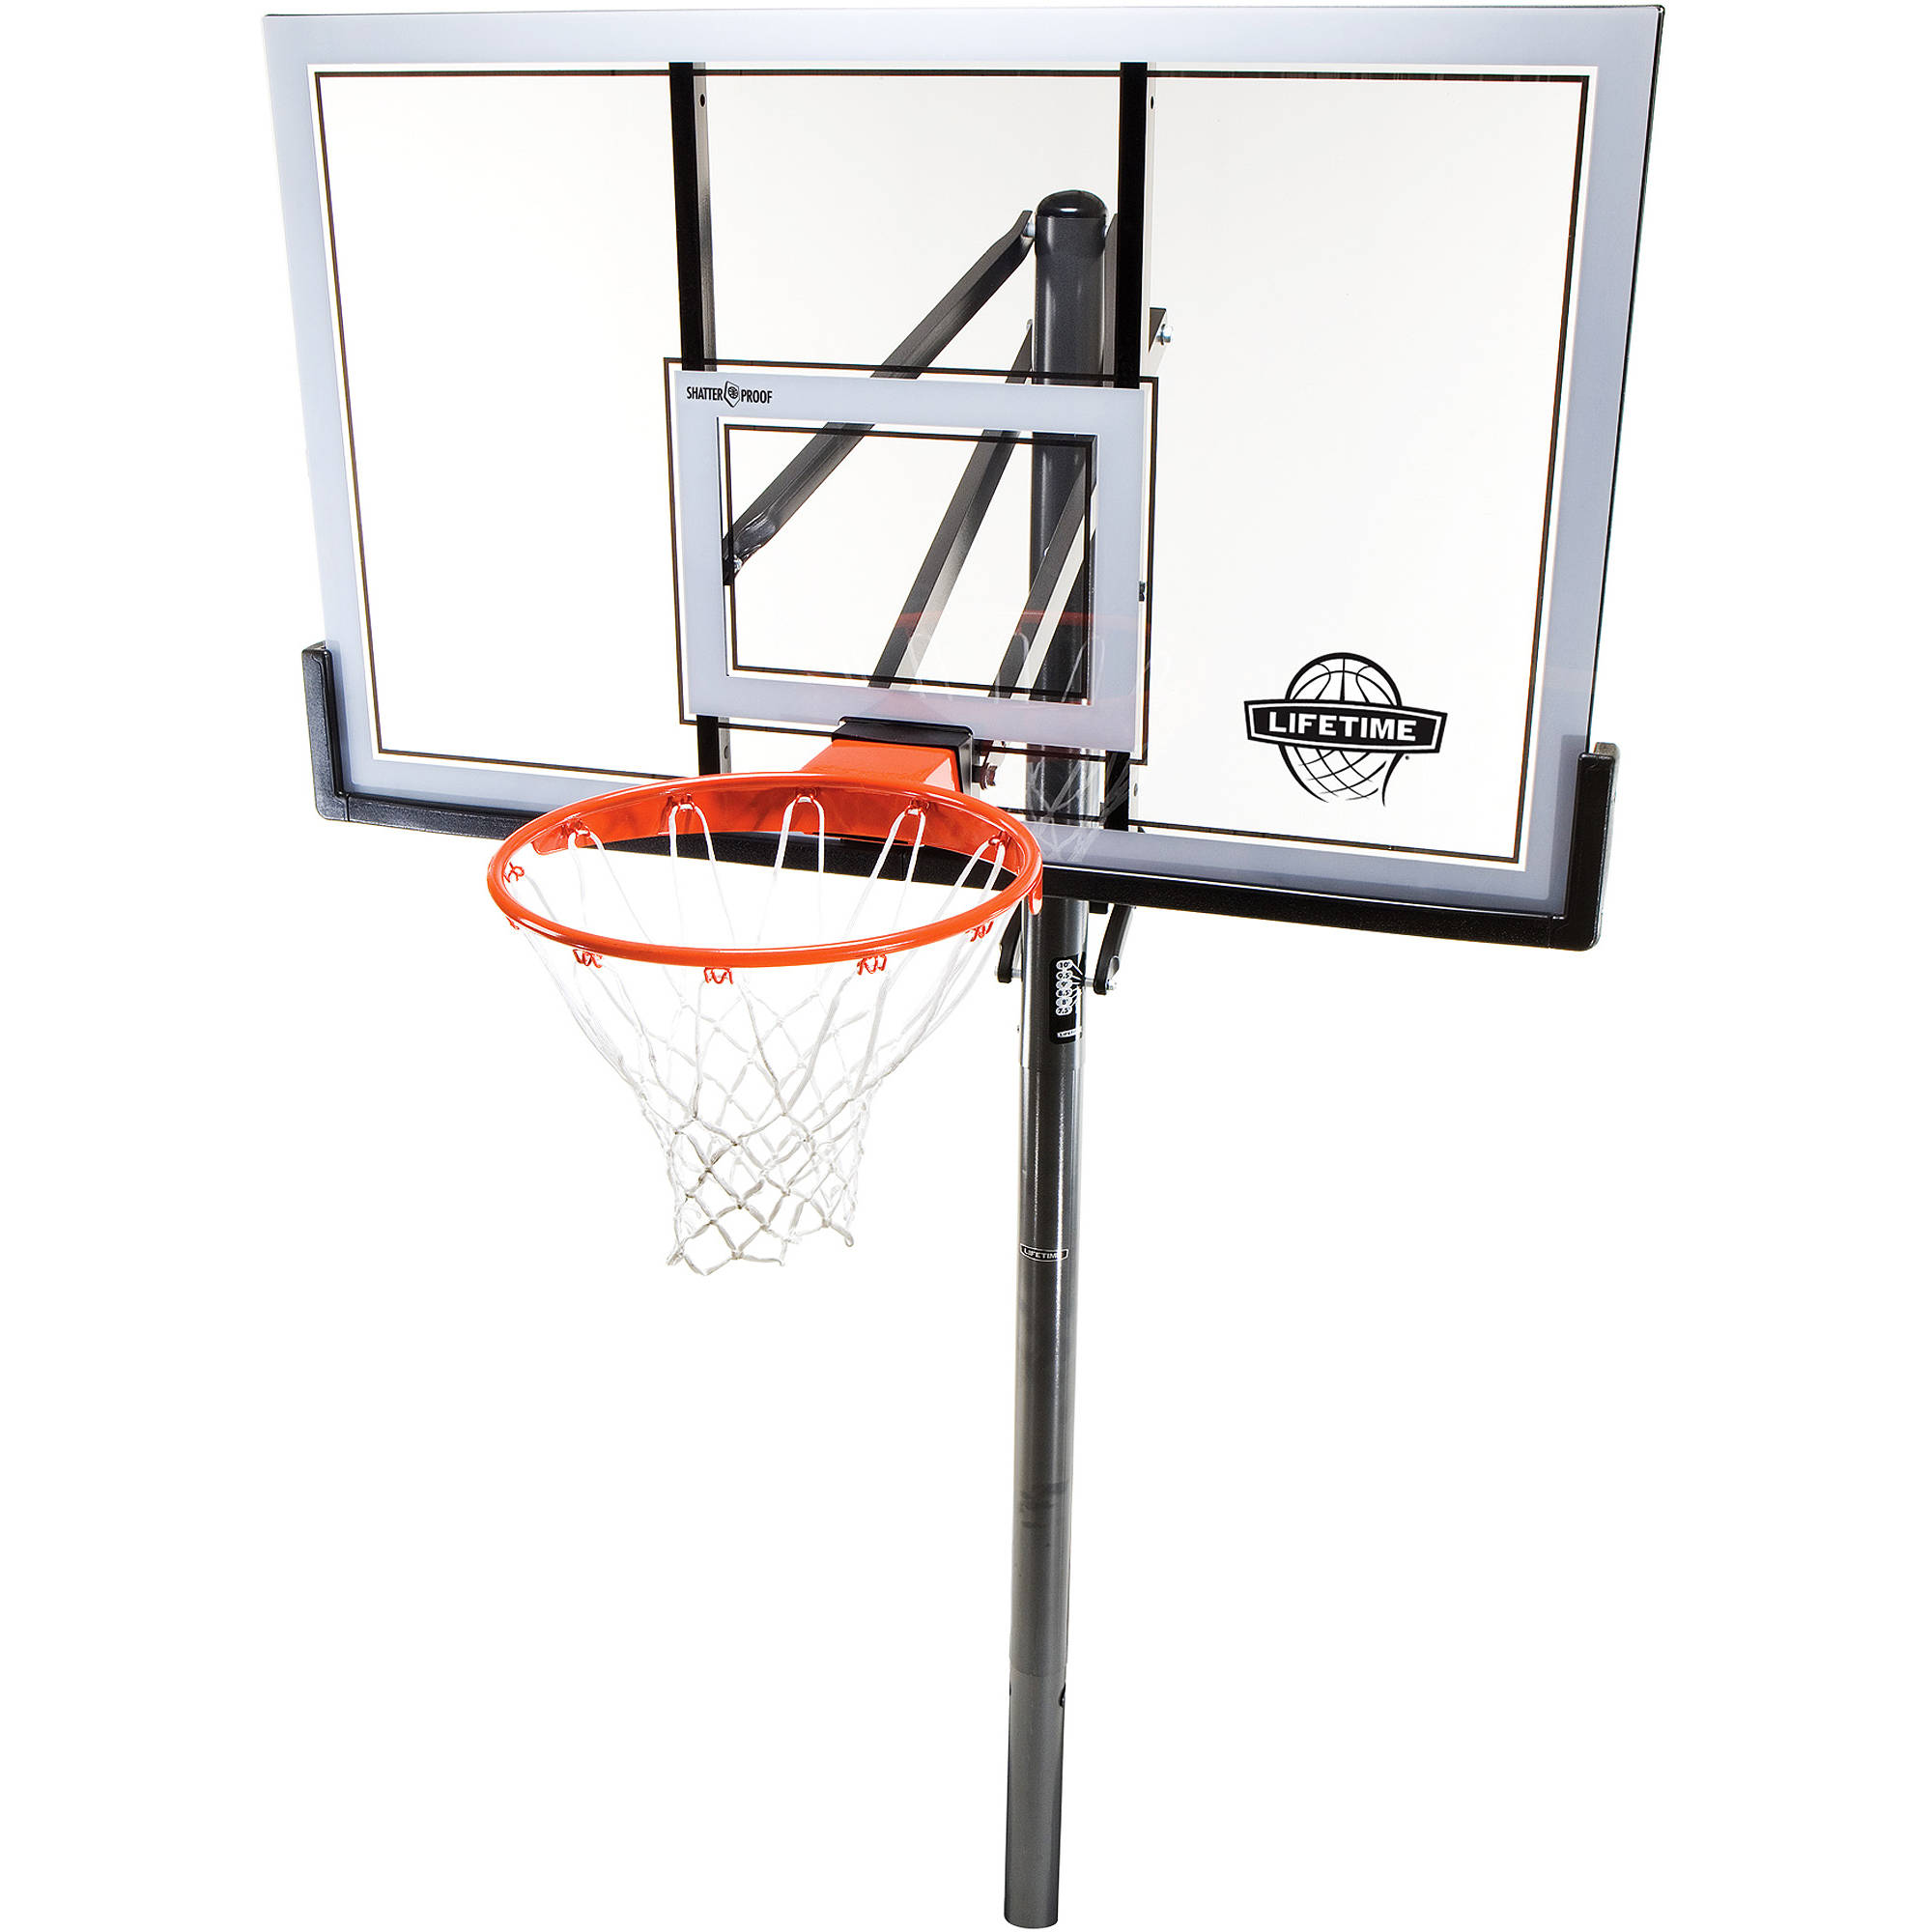 "Lifetime 54"" Shatterproof In-Ground Infinate Height Adjustable Basketball System, 78888"